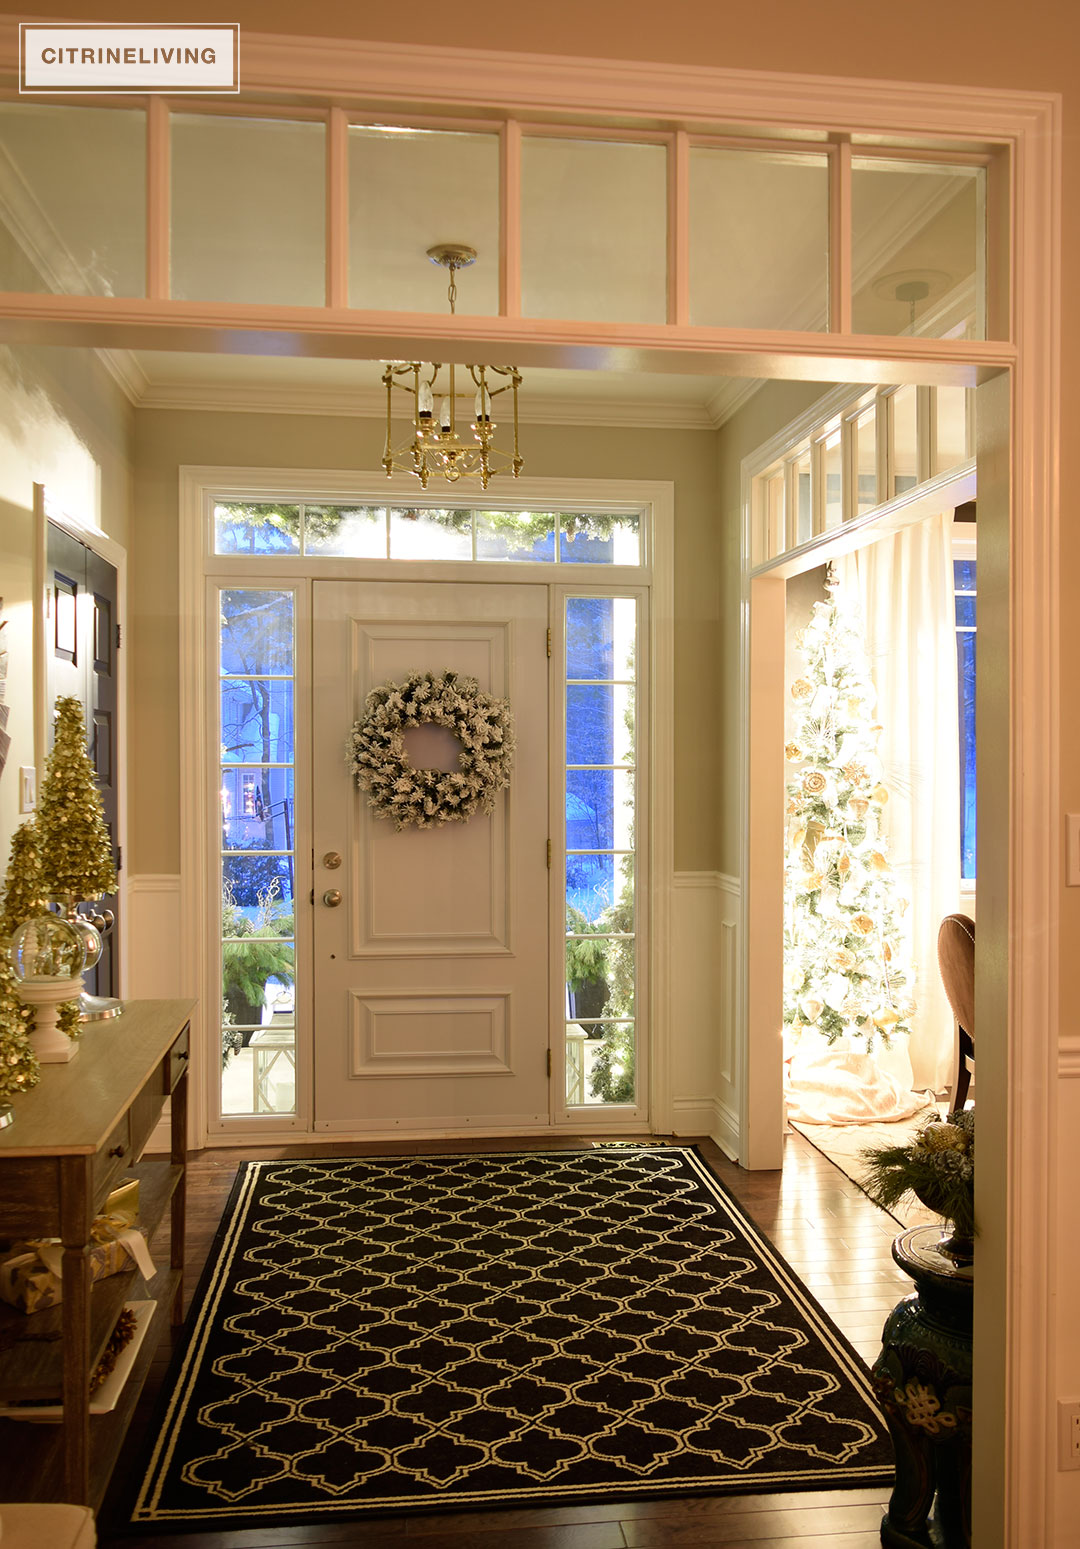 nighttime-entryway-christmas-tree